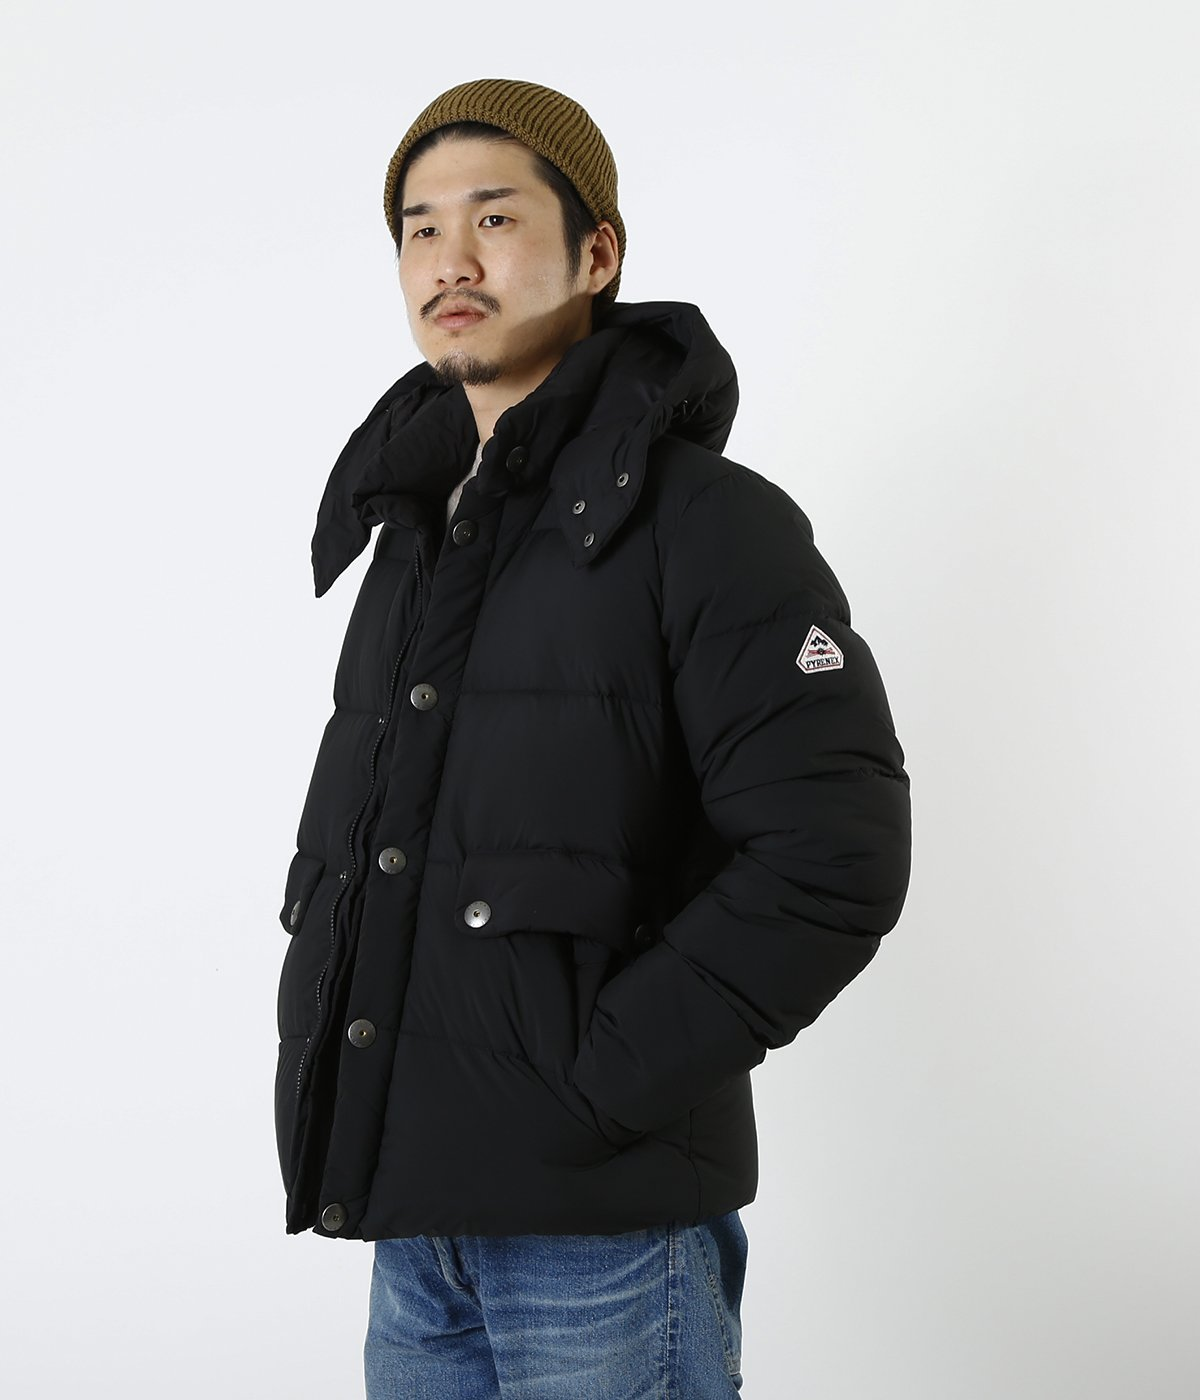 Reims Jacket -AMIRAL-